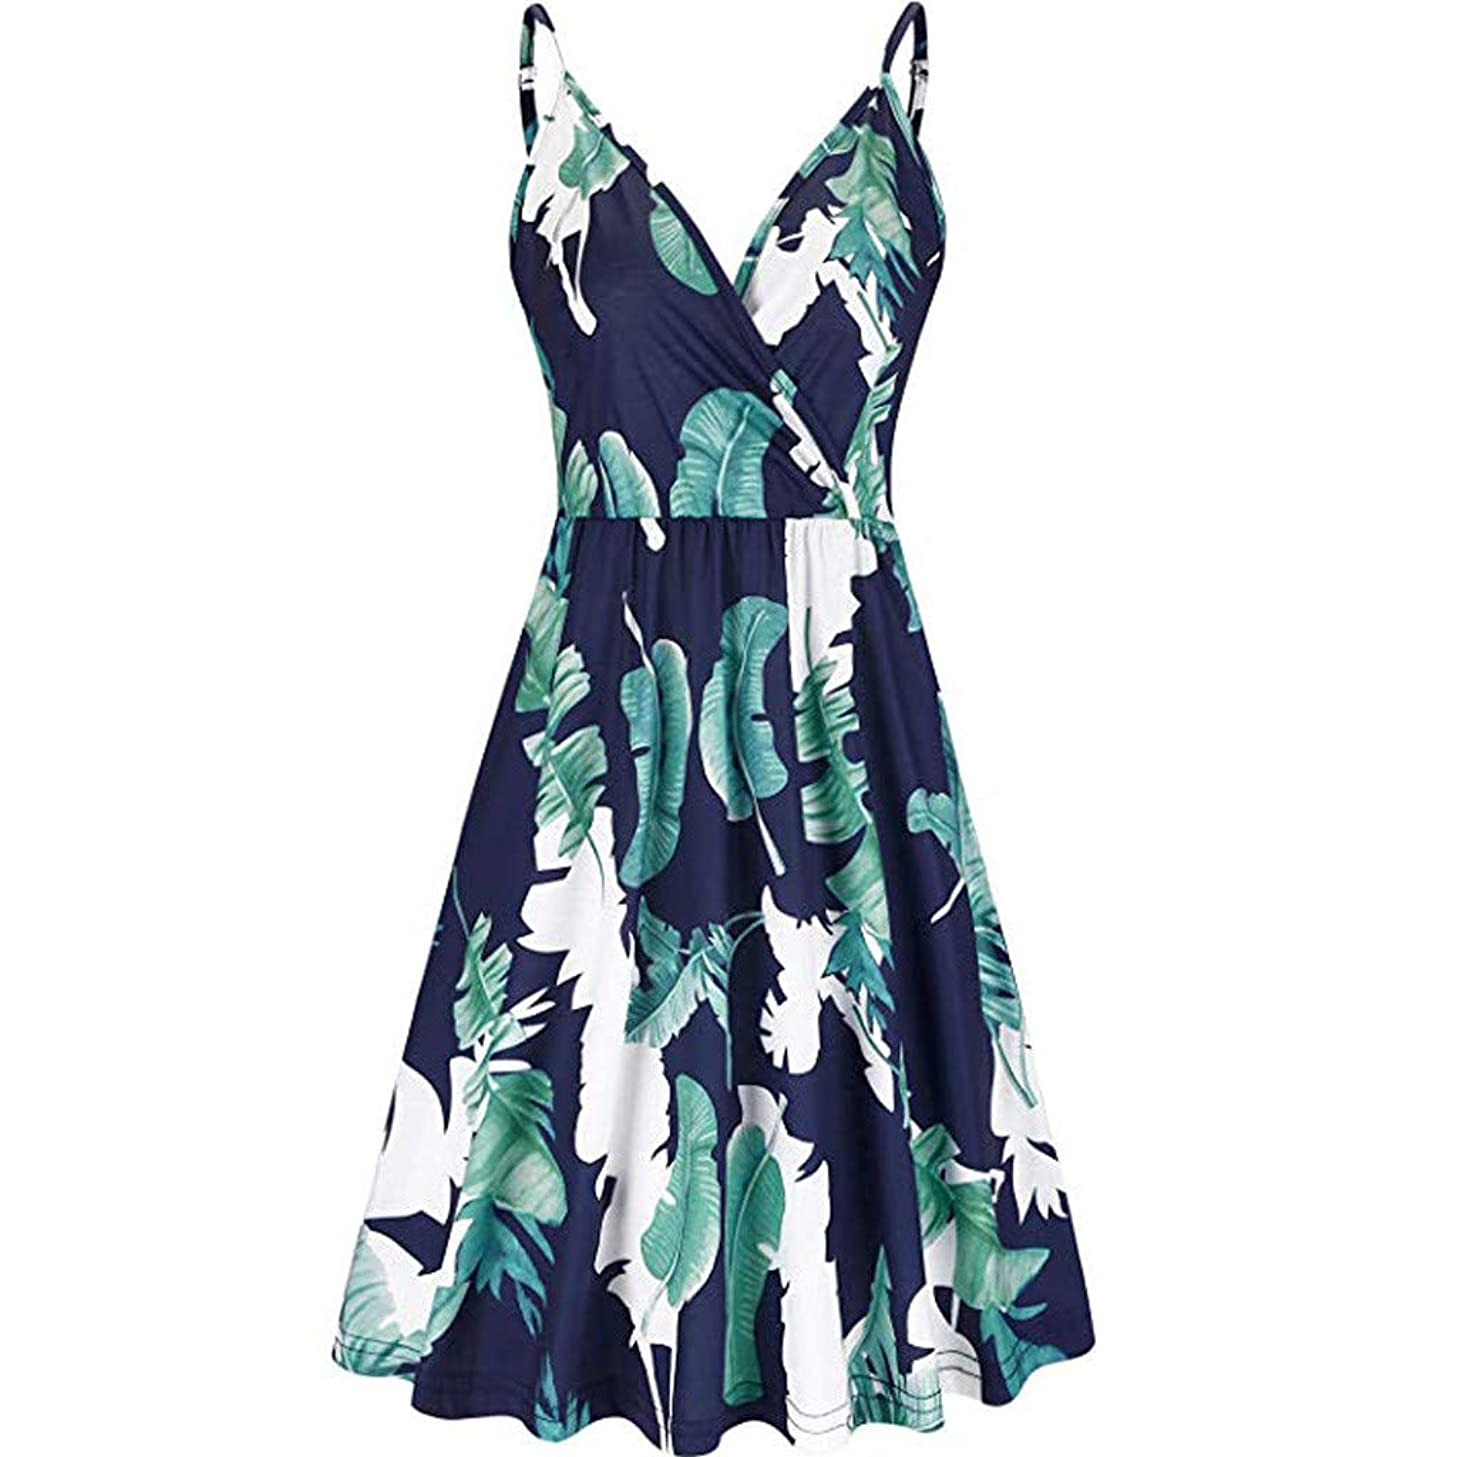 Haalife??Women's Summer Floral Spaghetti Strap Dress Tropical Print Adjustable Strappy Dress